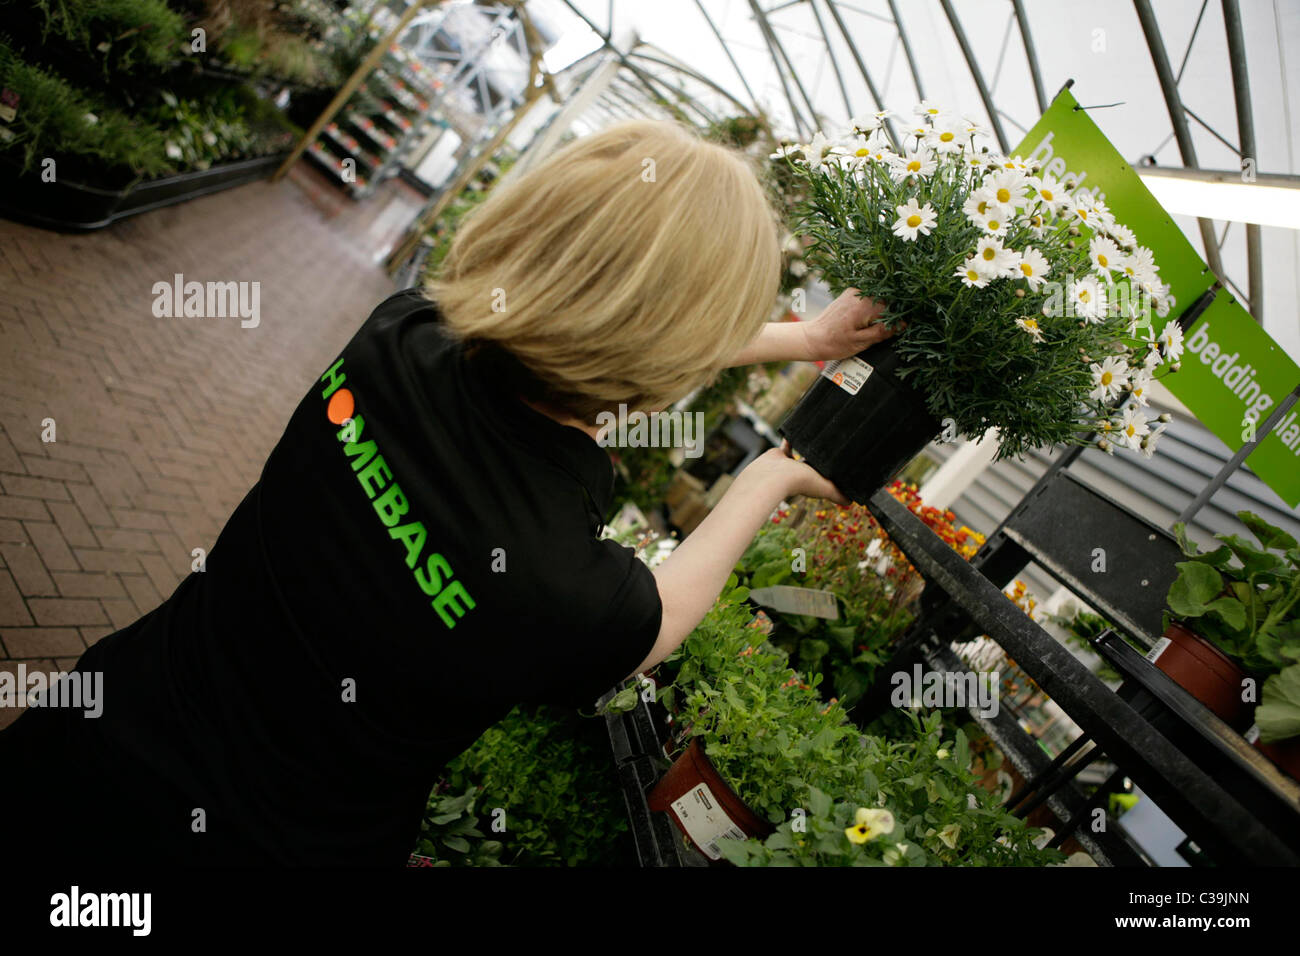 A Homebase employee at work in the gardening deparment of a store. - Stock Image